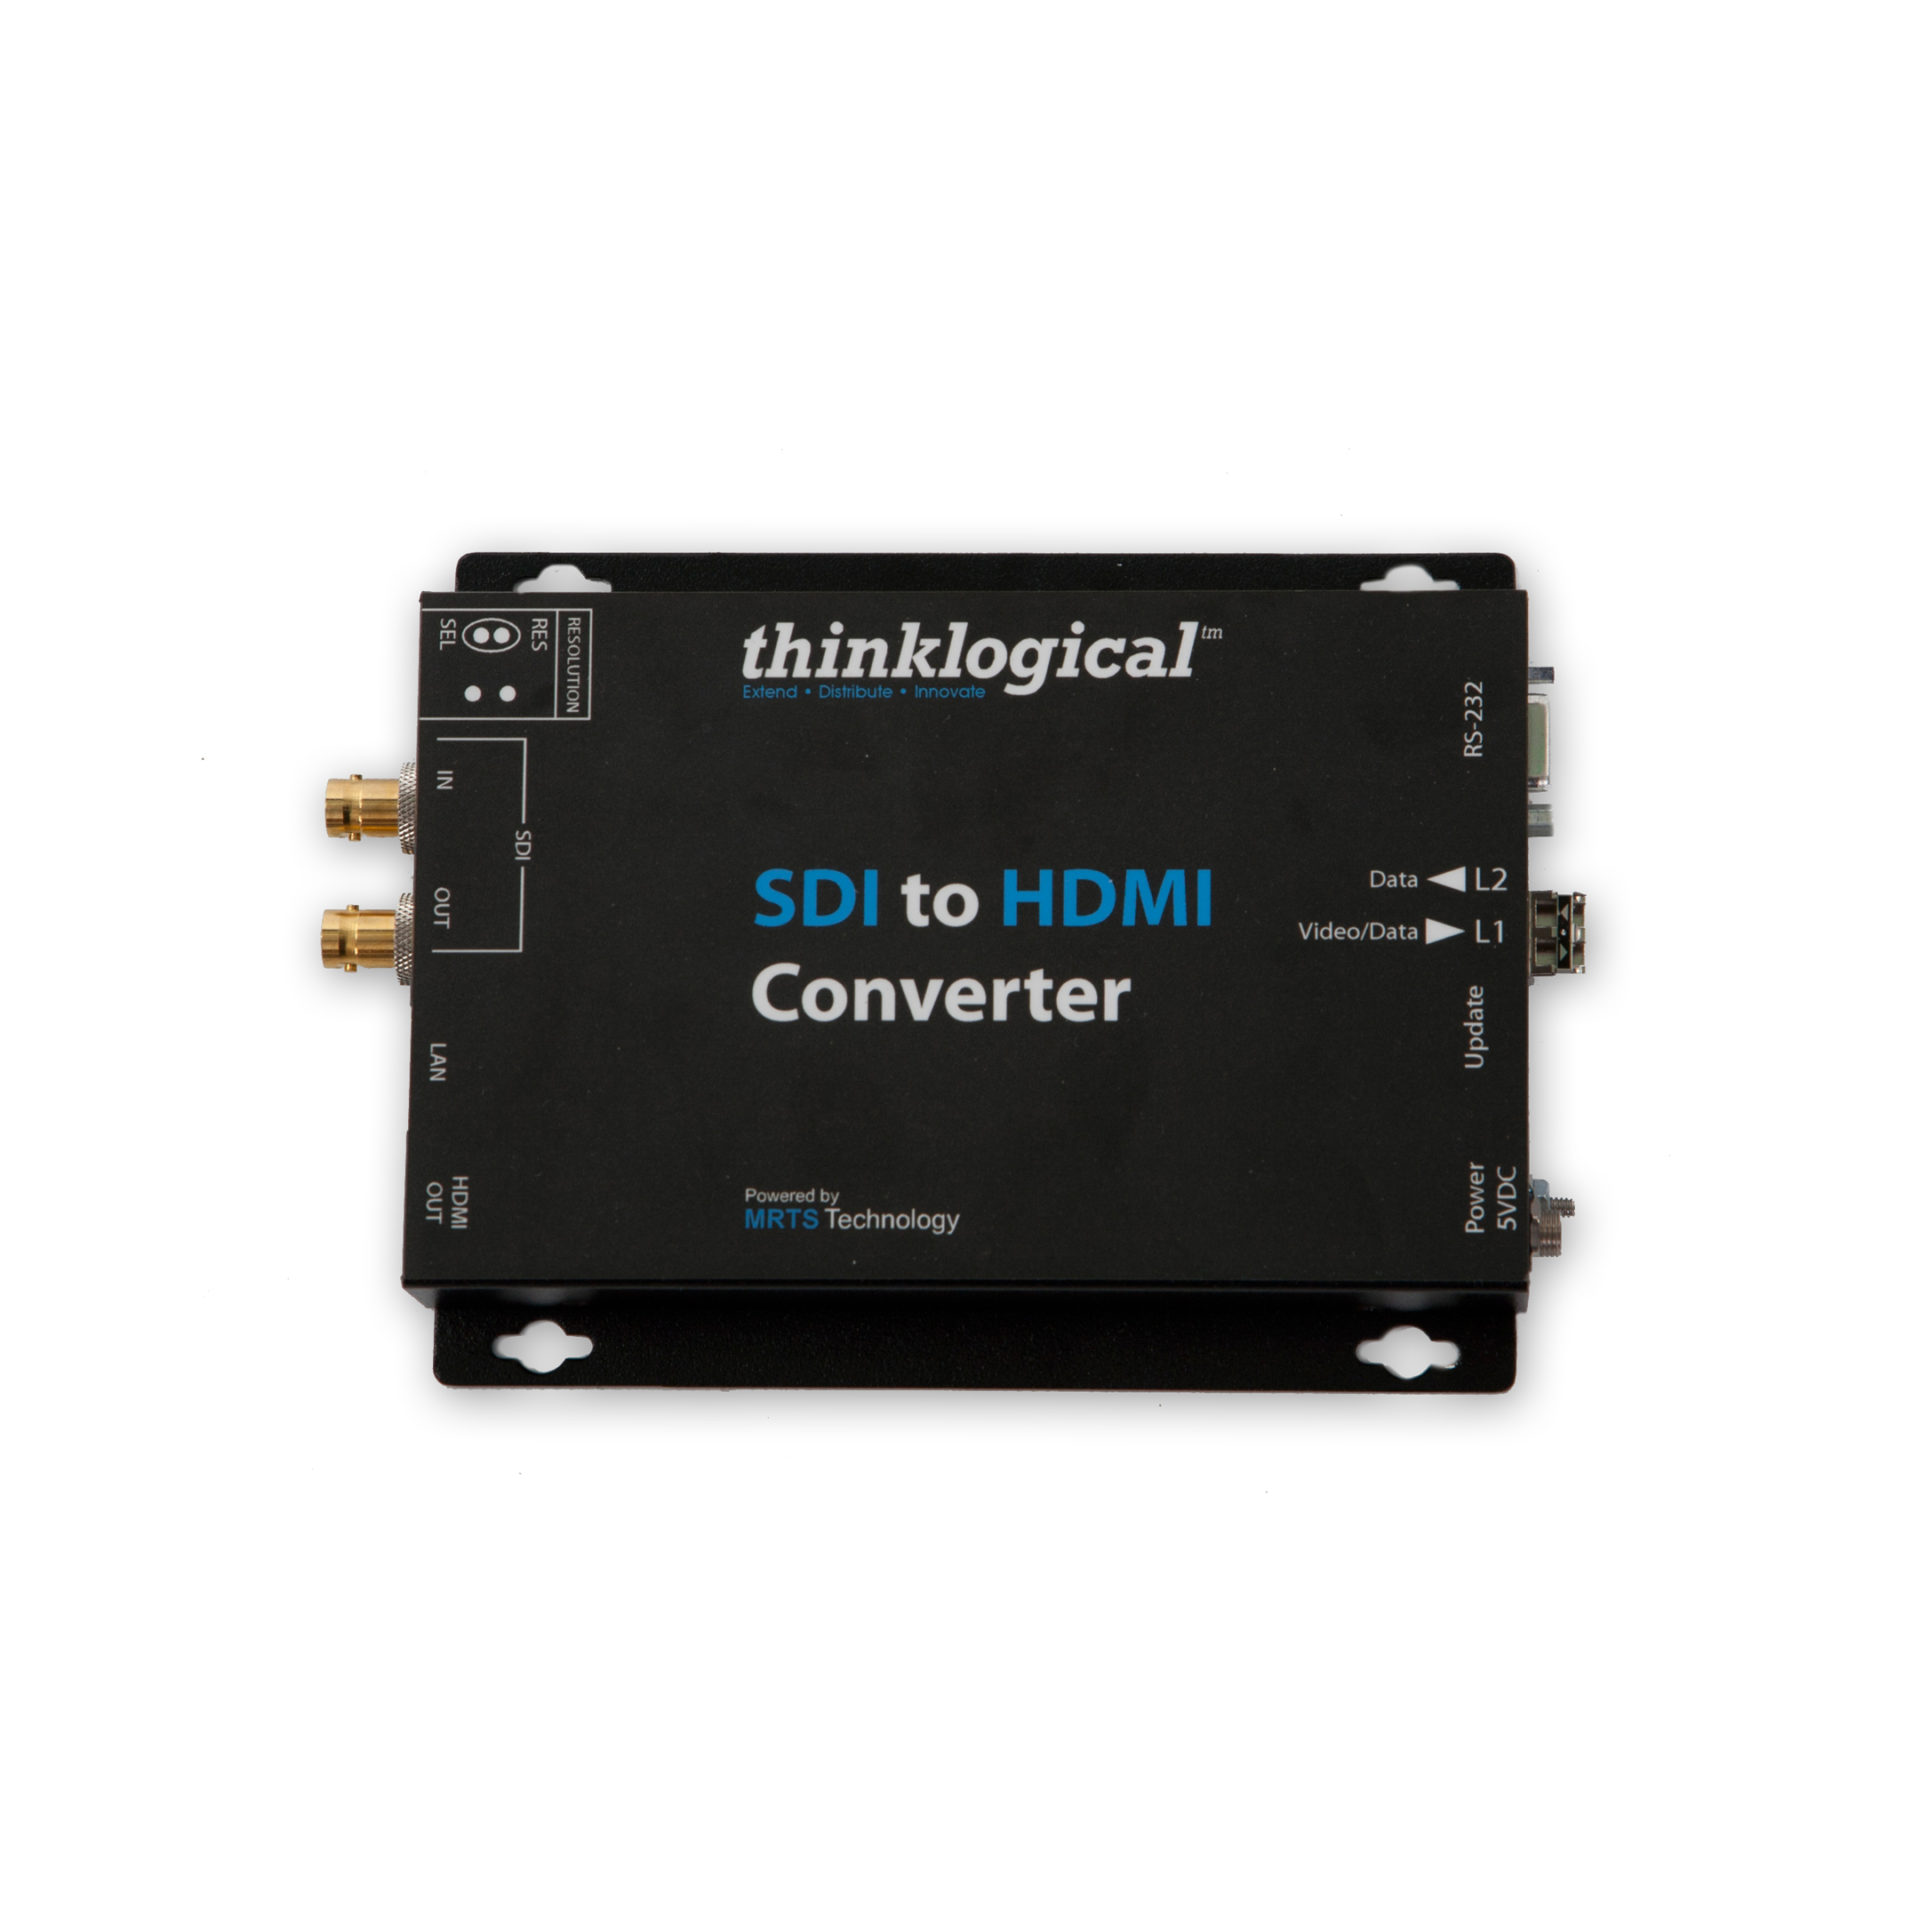 SDI to HDMI Conversion and Extension